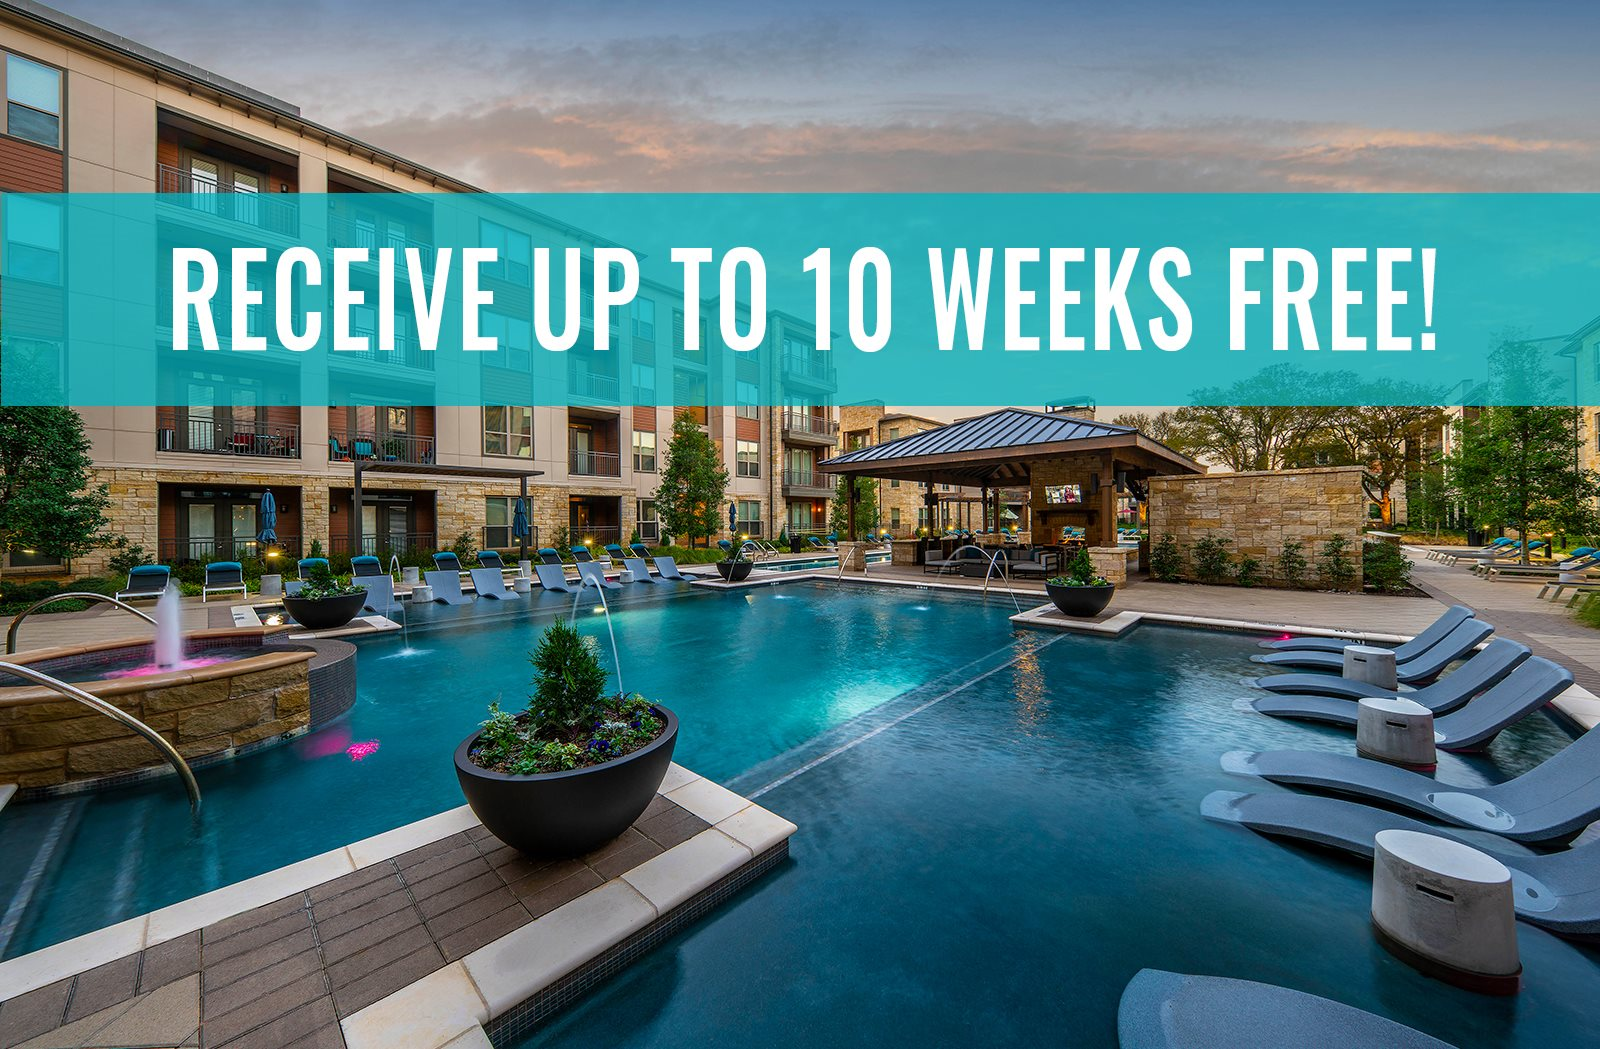 Receive up to 10 weeks free at Bexley Grapevine!